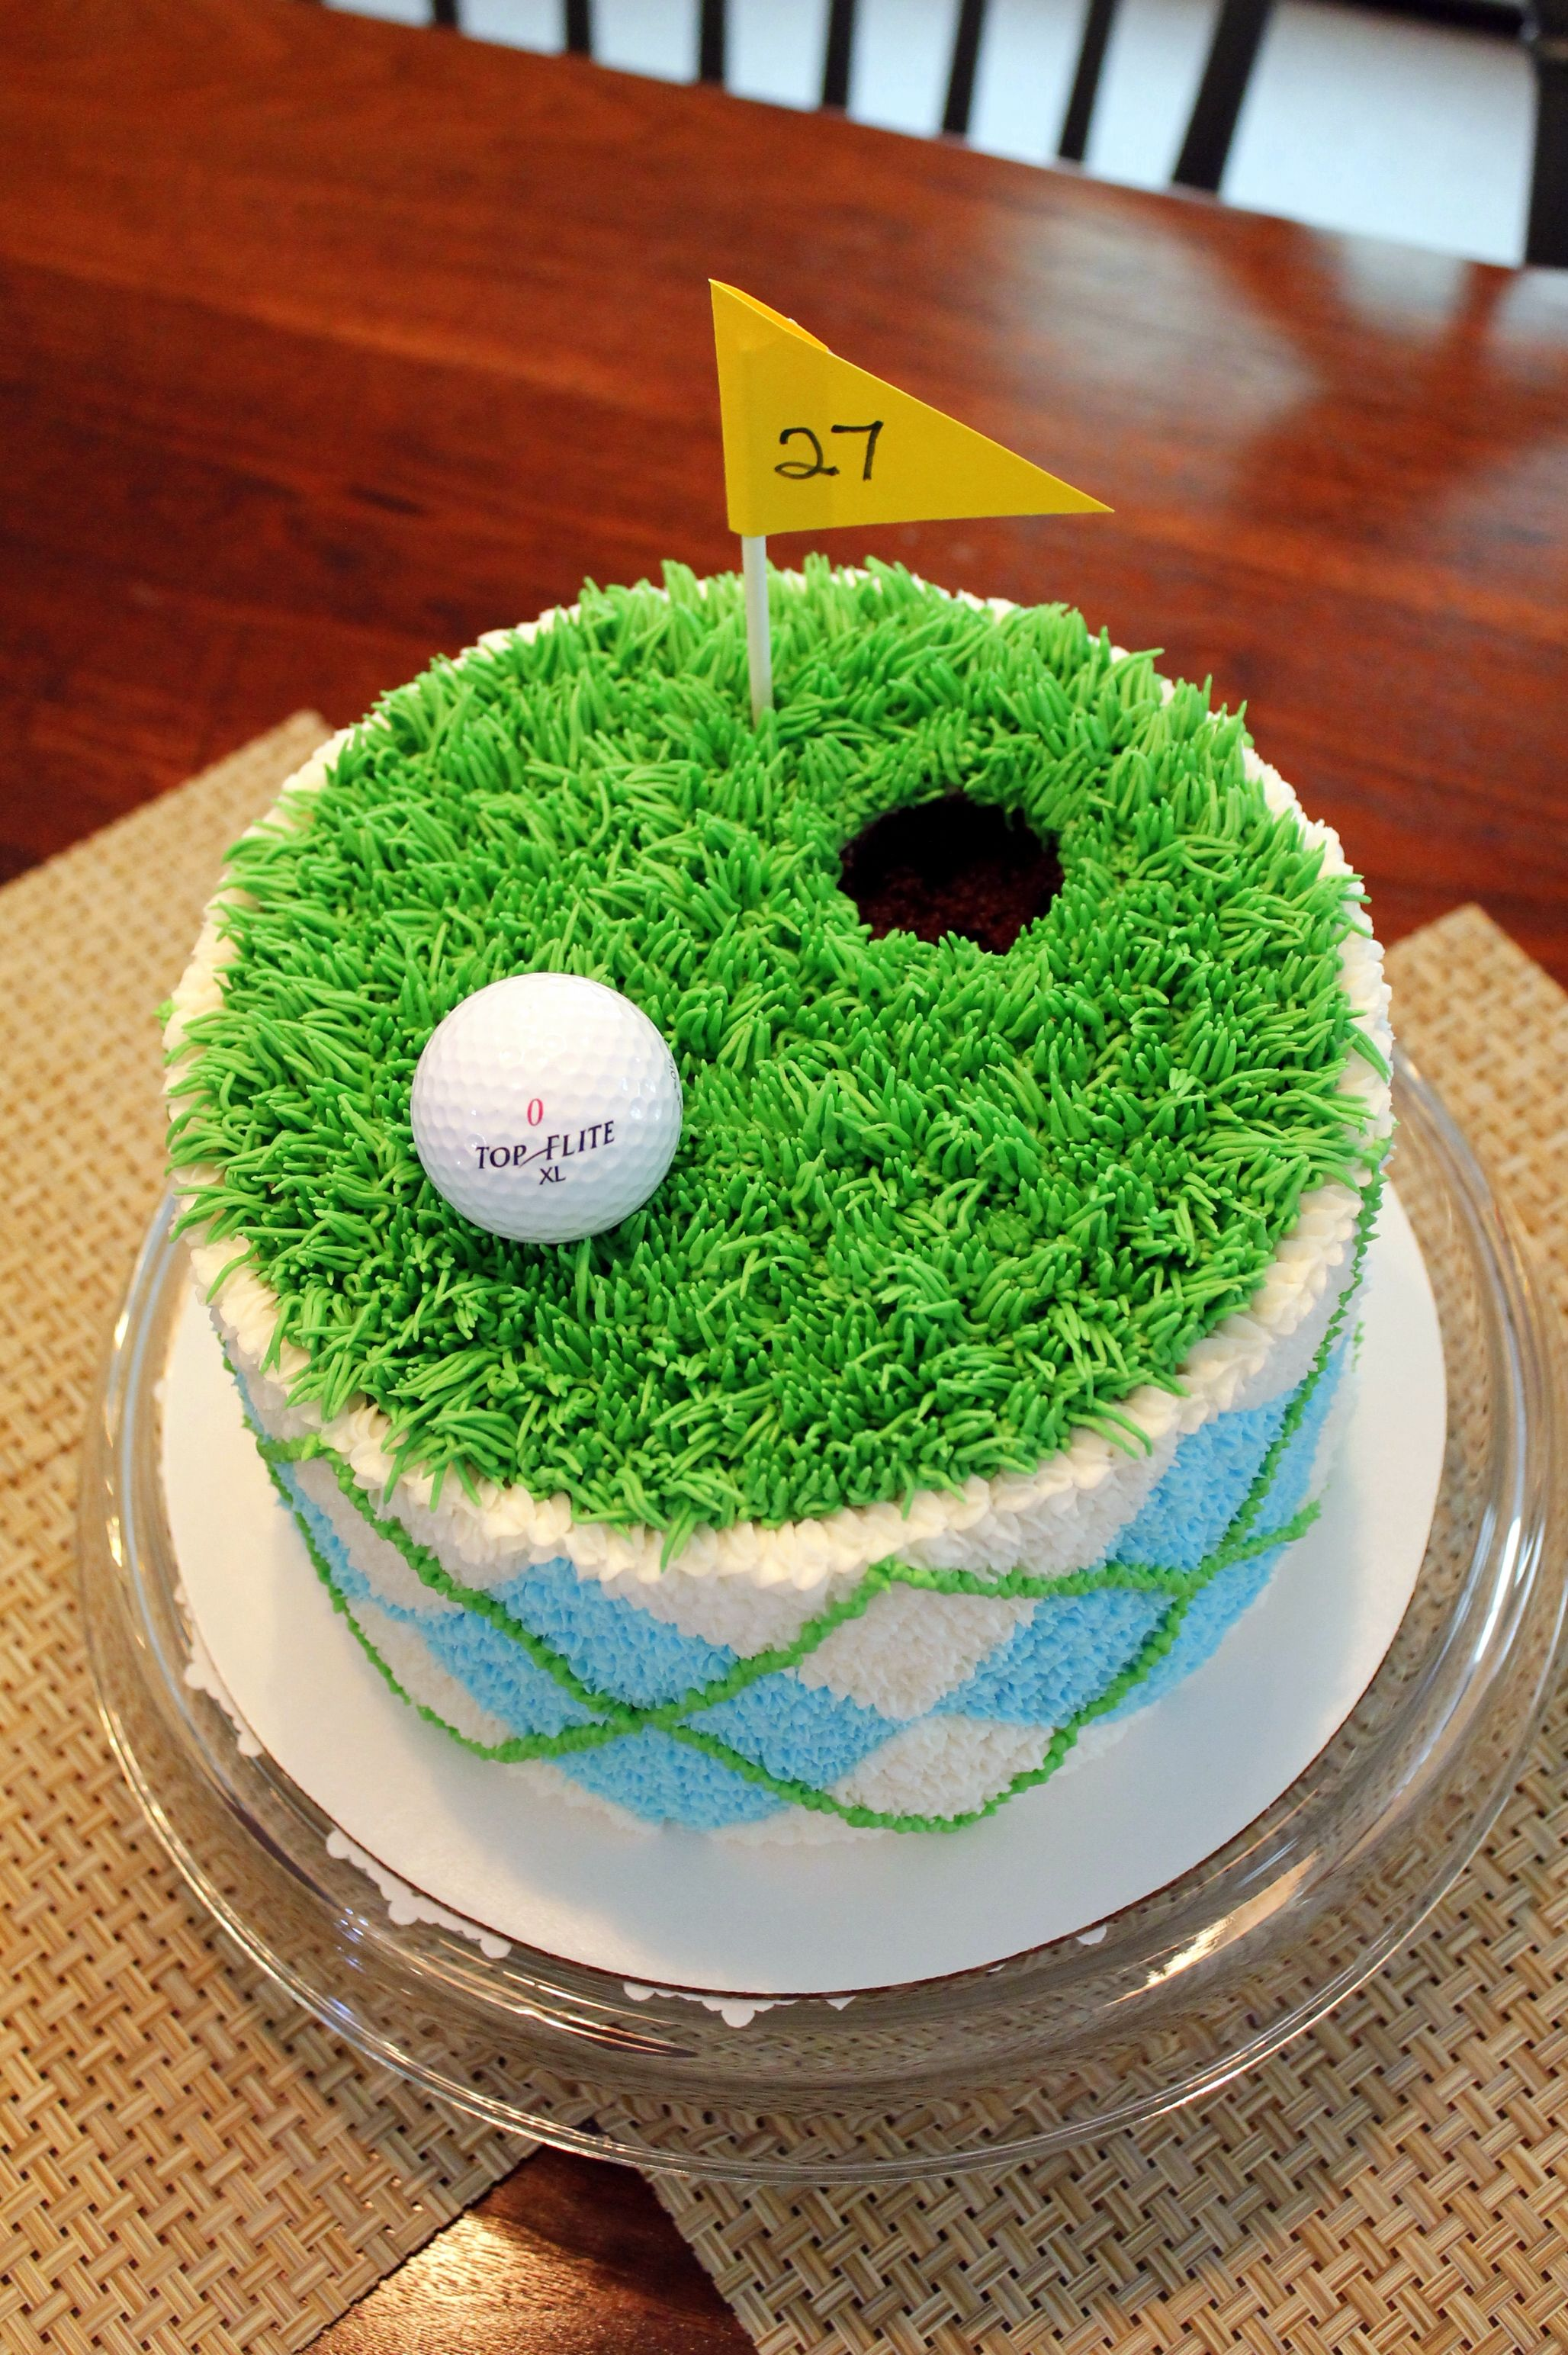 Like This With Buttercream Tastier Then Fondant Golf